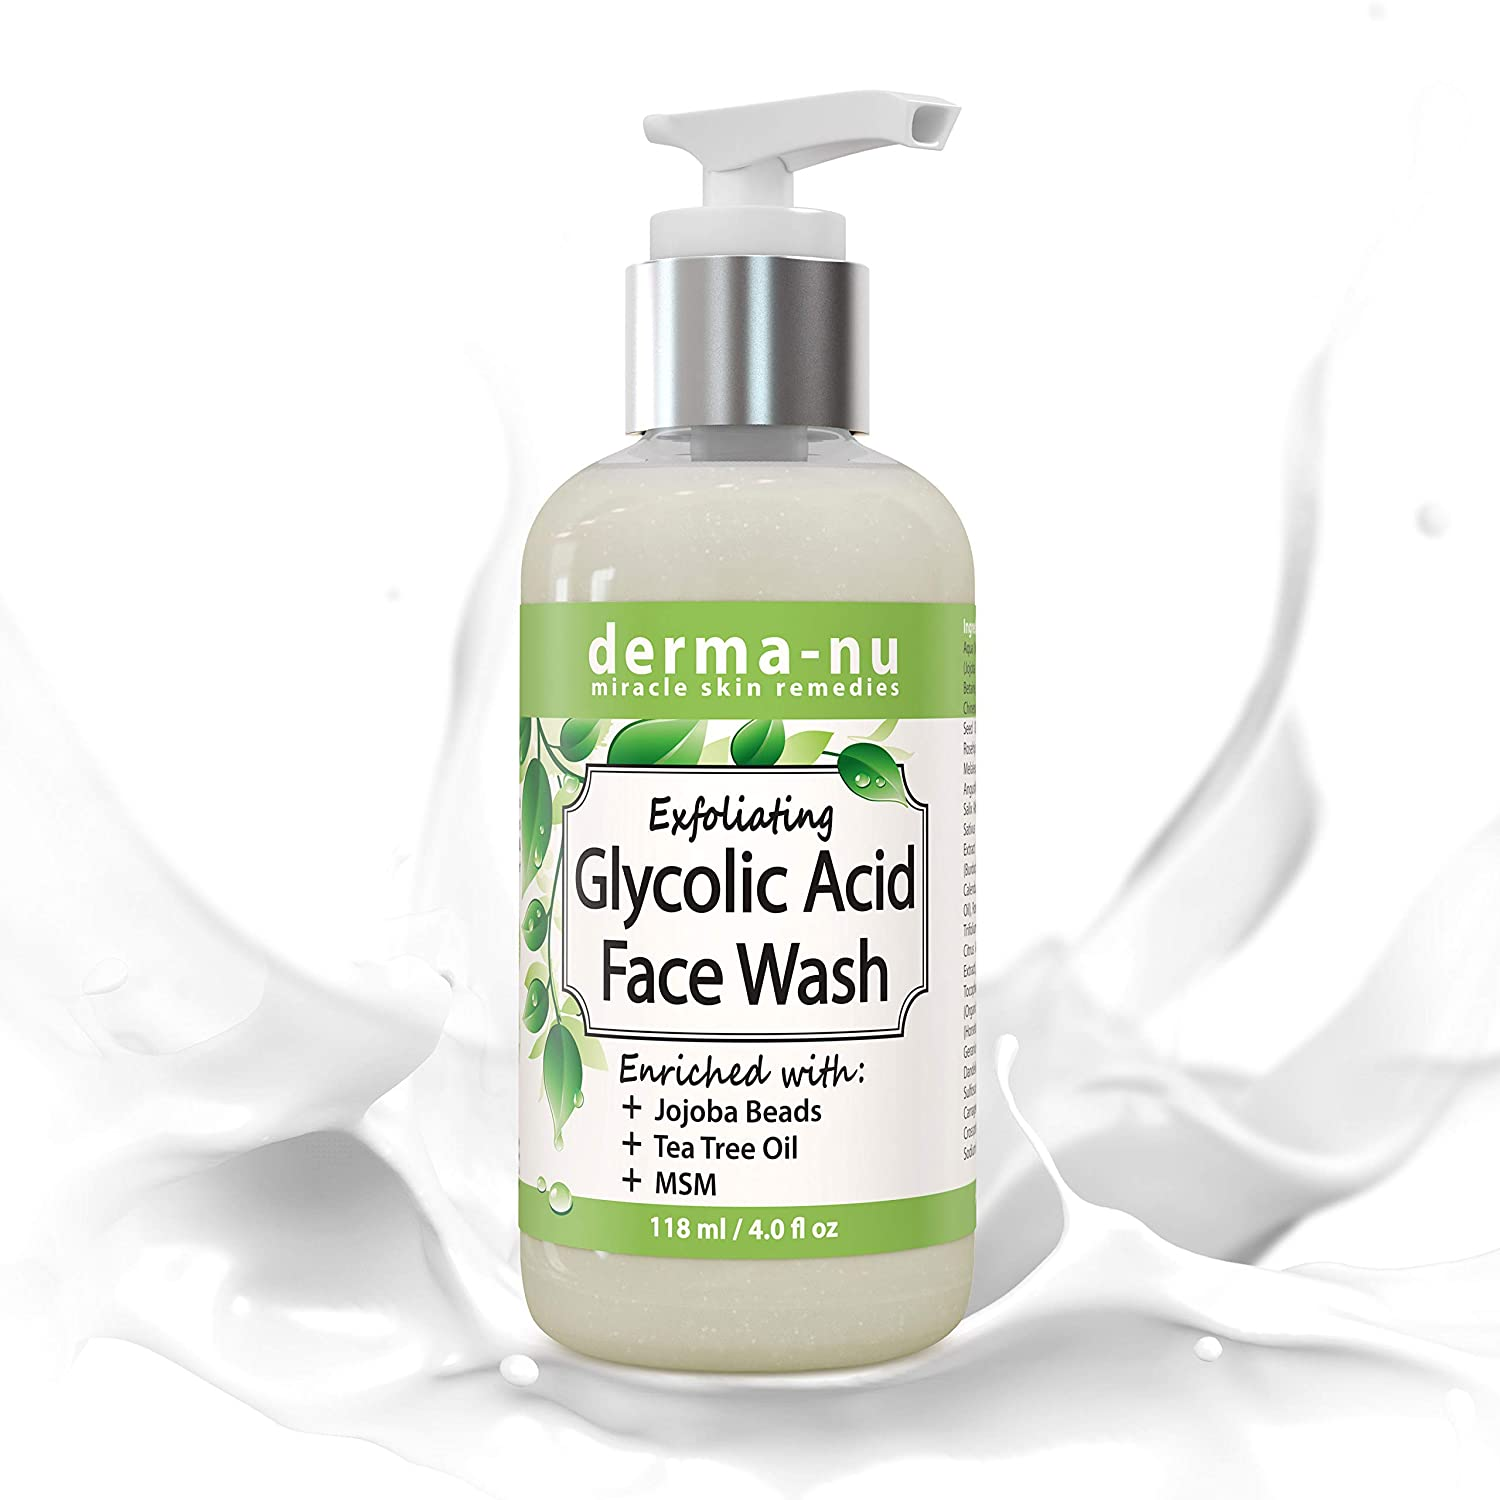 Glycolic Acid Exfoliating Face Wash - Natural & Organic Cleanser - Anti-Aging And Effective Against Acne Fine Lines, pimples and Blemishes - Suitable For Sensitive Skin